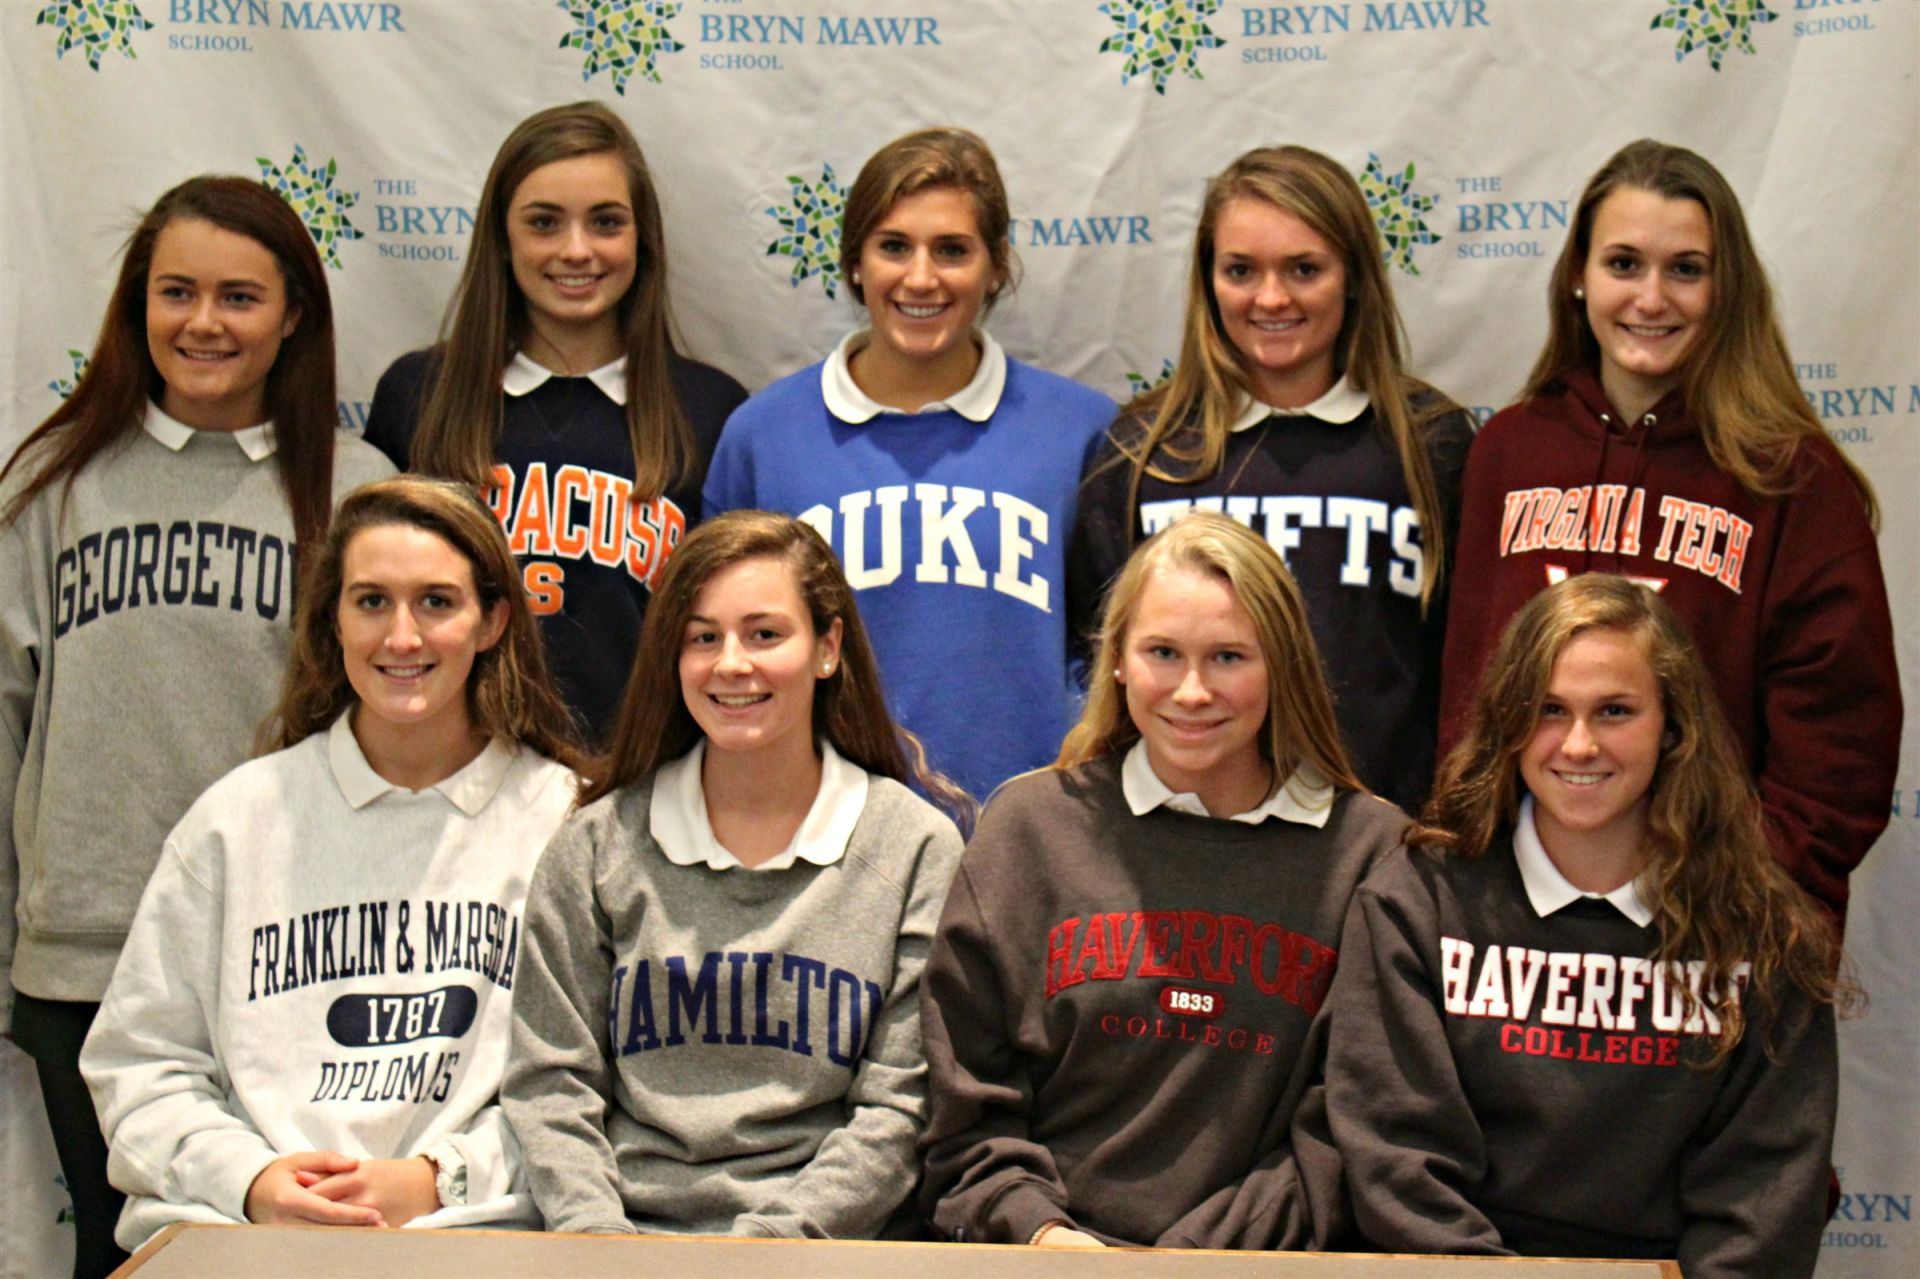 Members of the Class of 2018 on National Signing Day